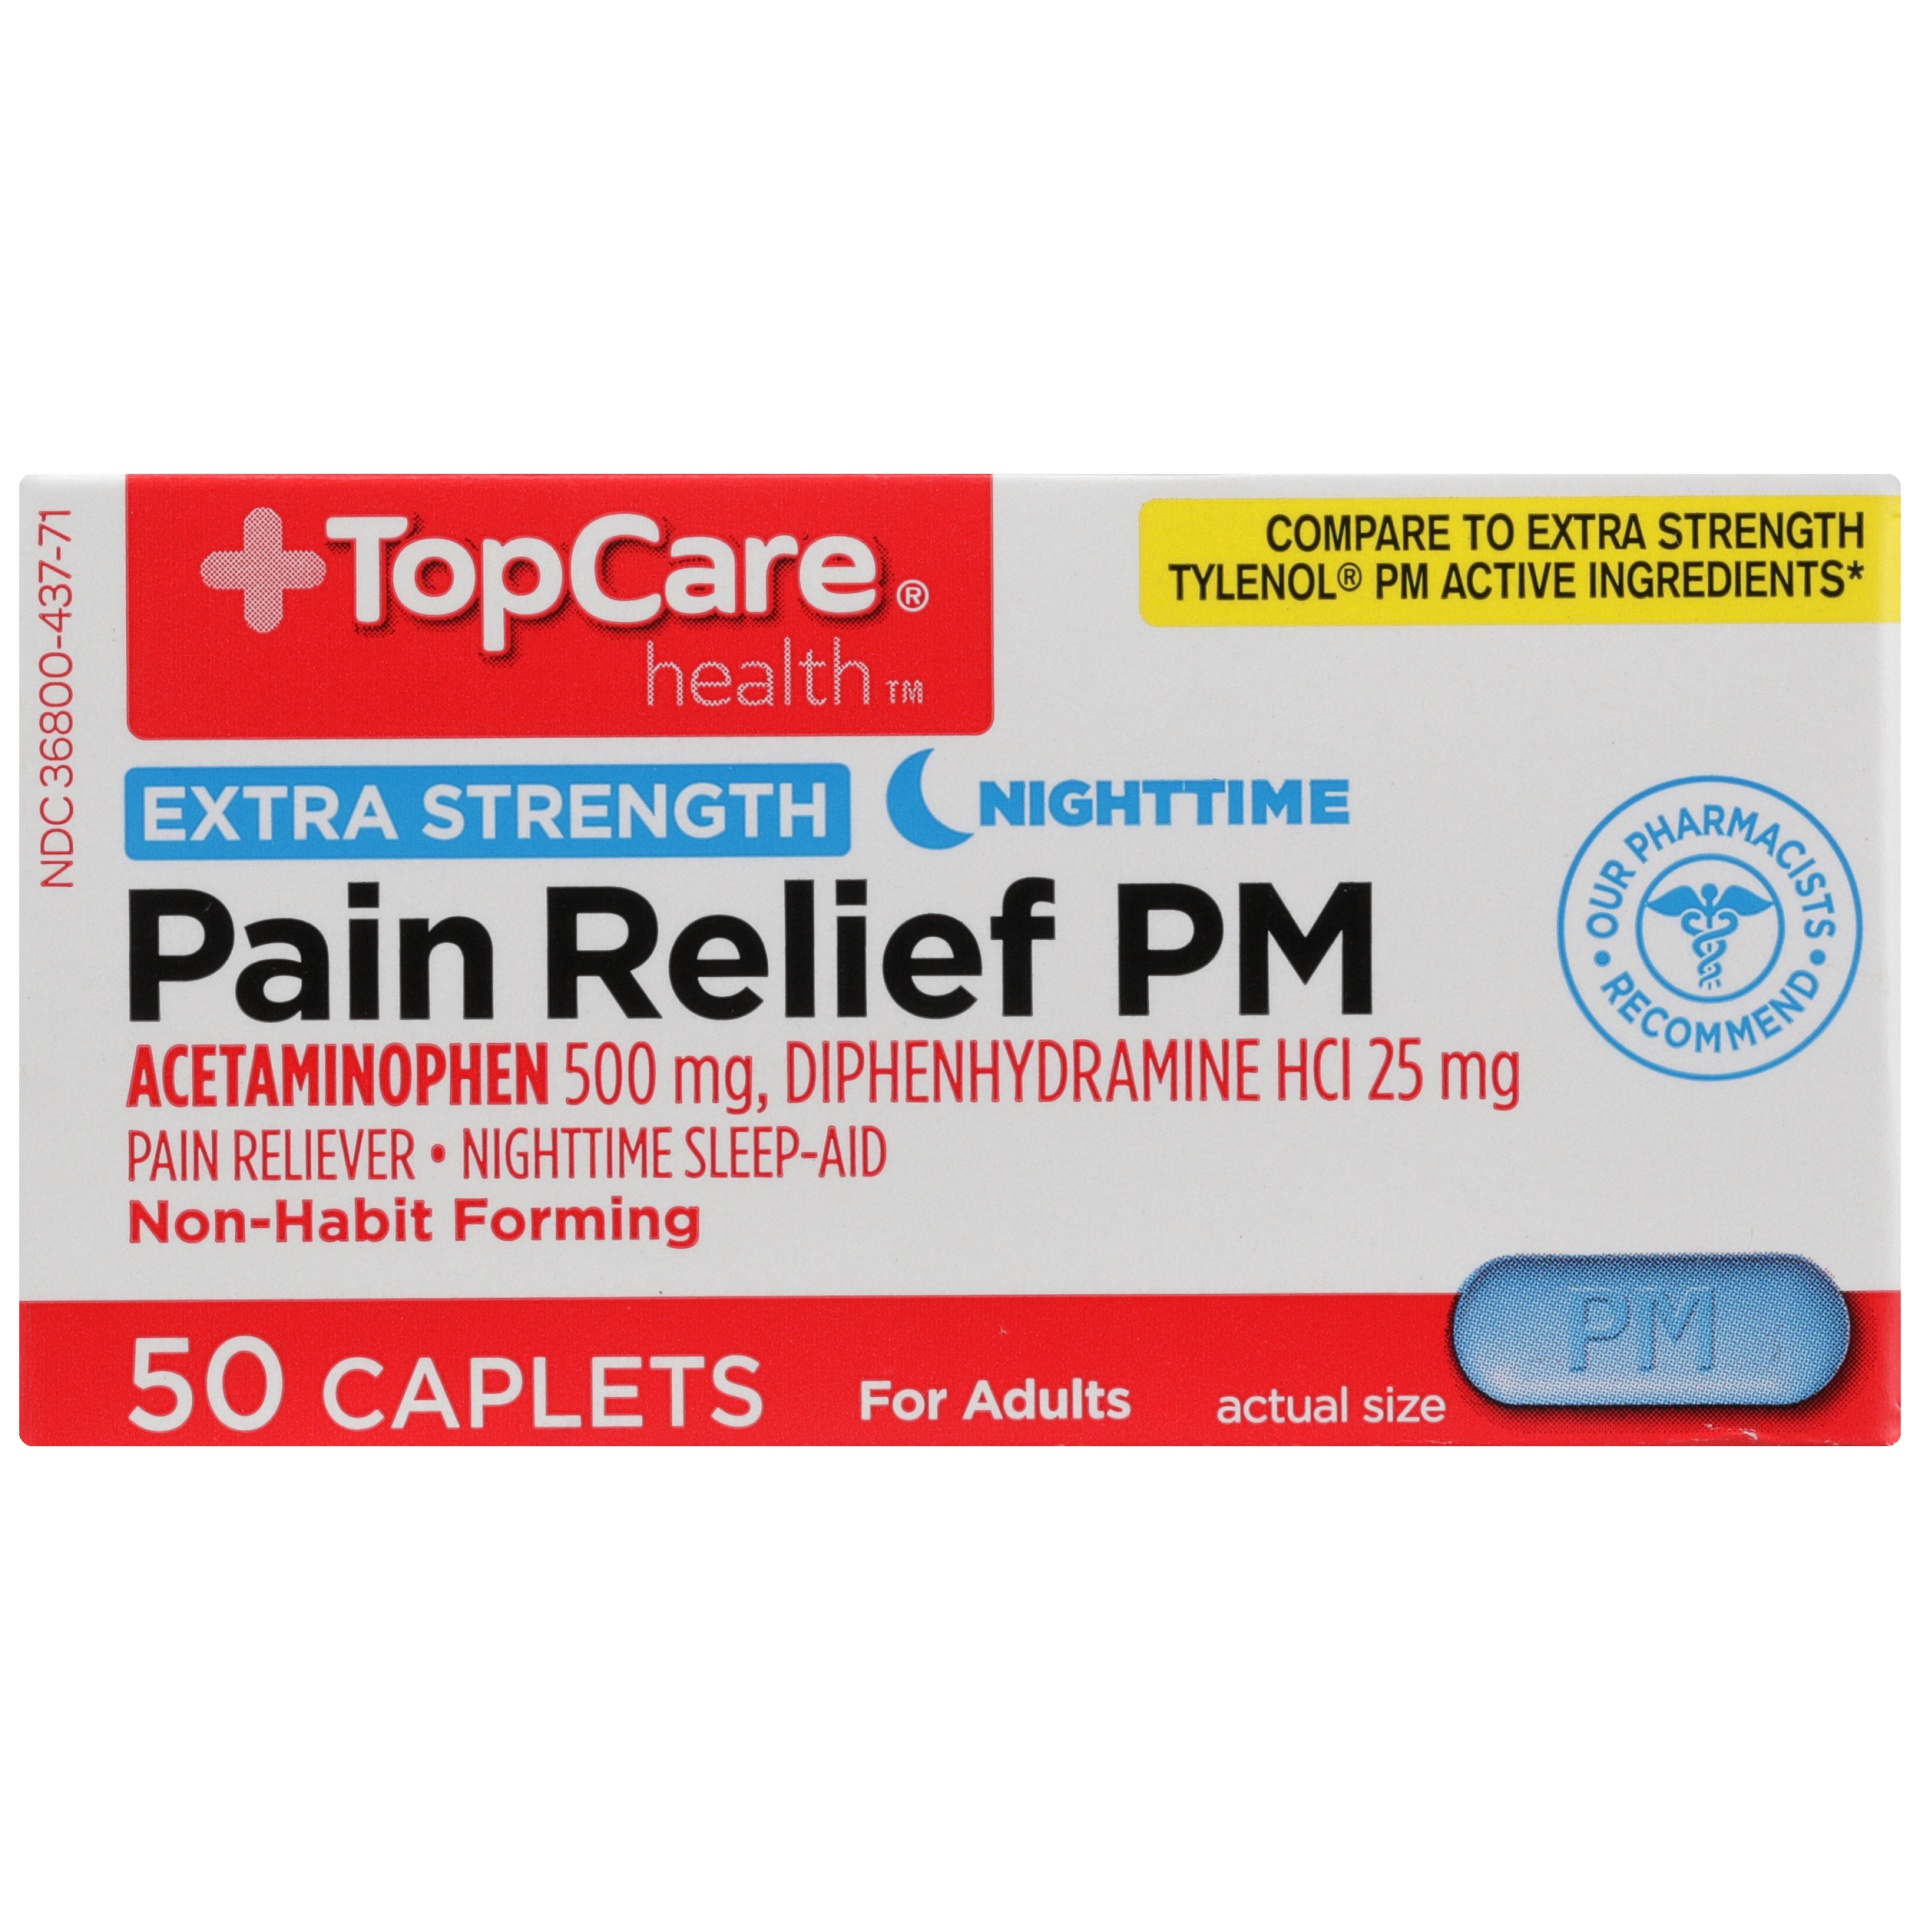 slide 4 of 6, TopCare Pain Relief PM Extra Strength,